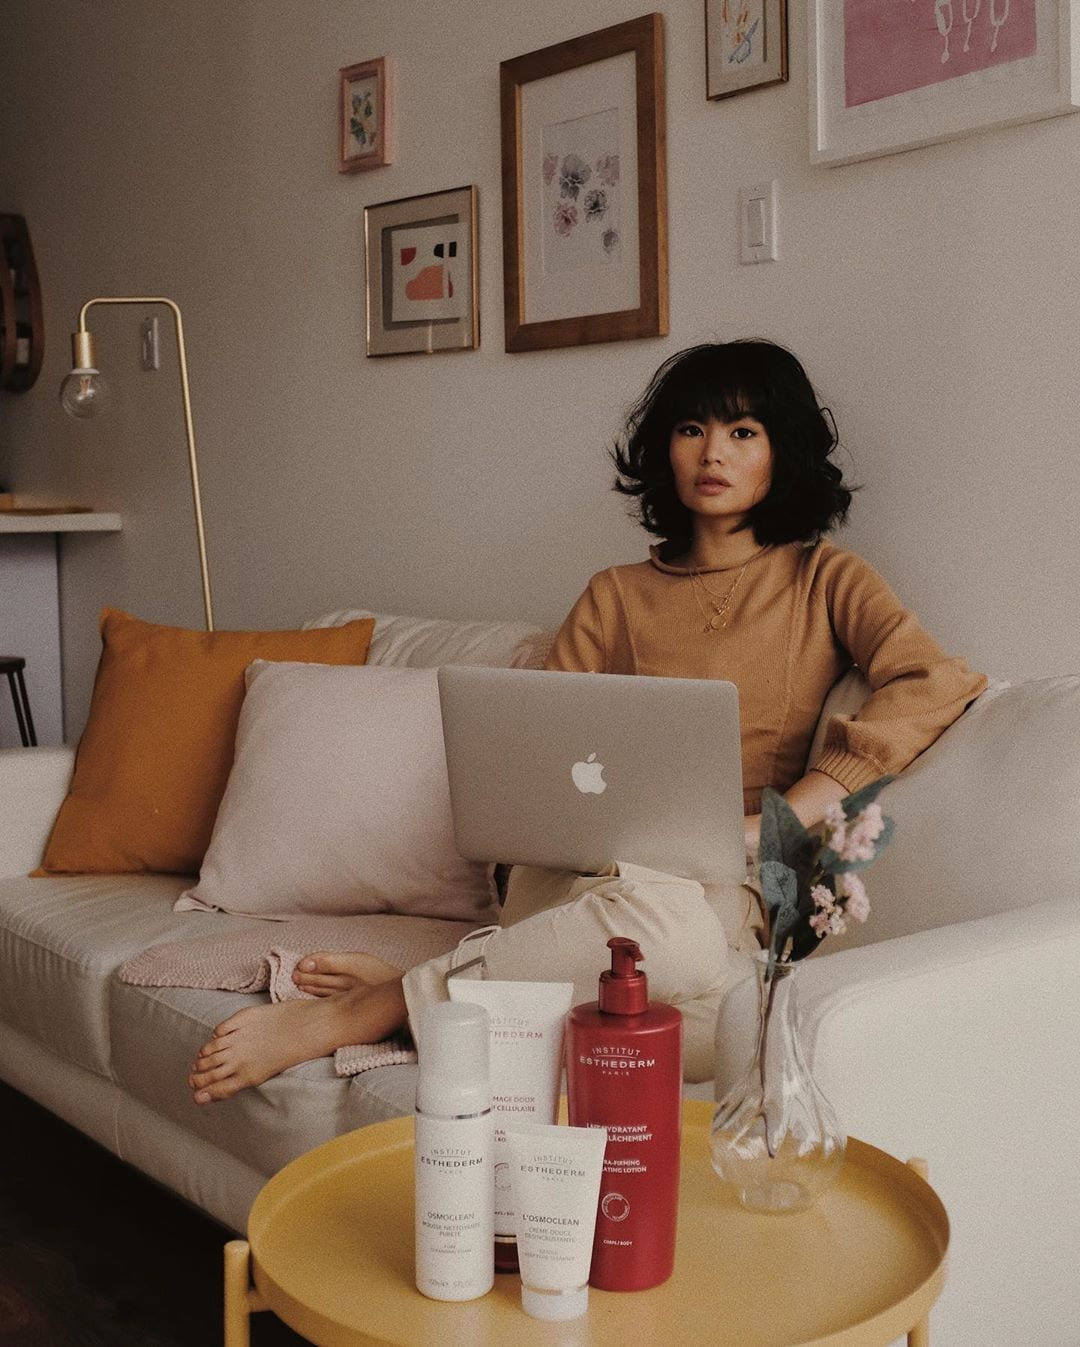 Work From Home Images : images, Productive, Working, Routine